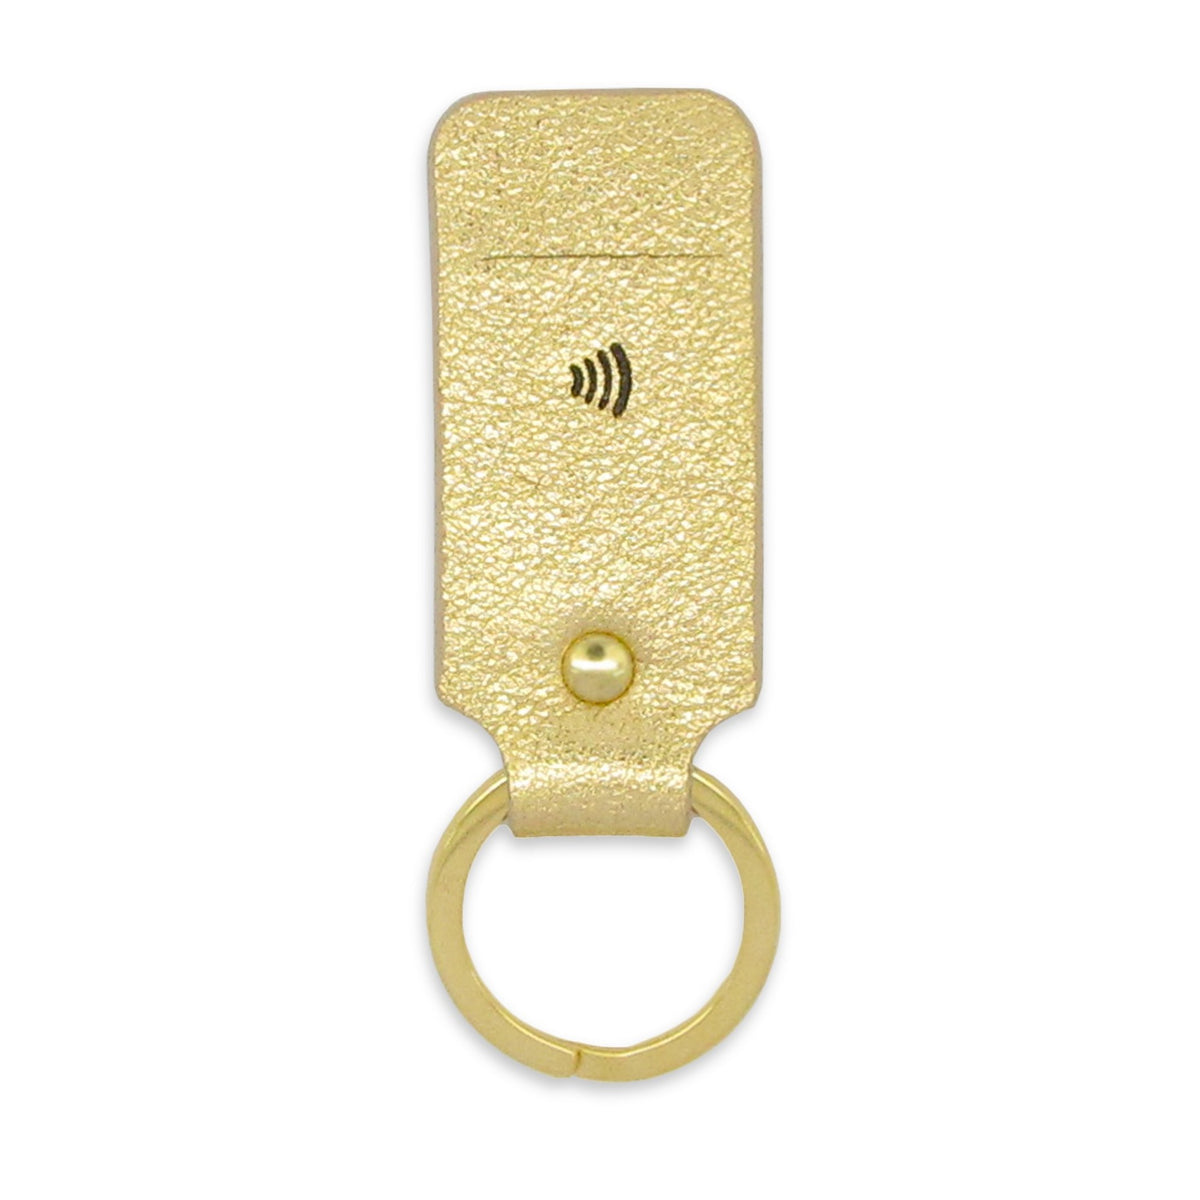 Unique birthday gifts for her - New payment tech in a beautifully crafted black and gold key ring by Tovi Sorga powered by Pingit